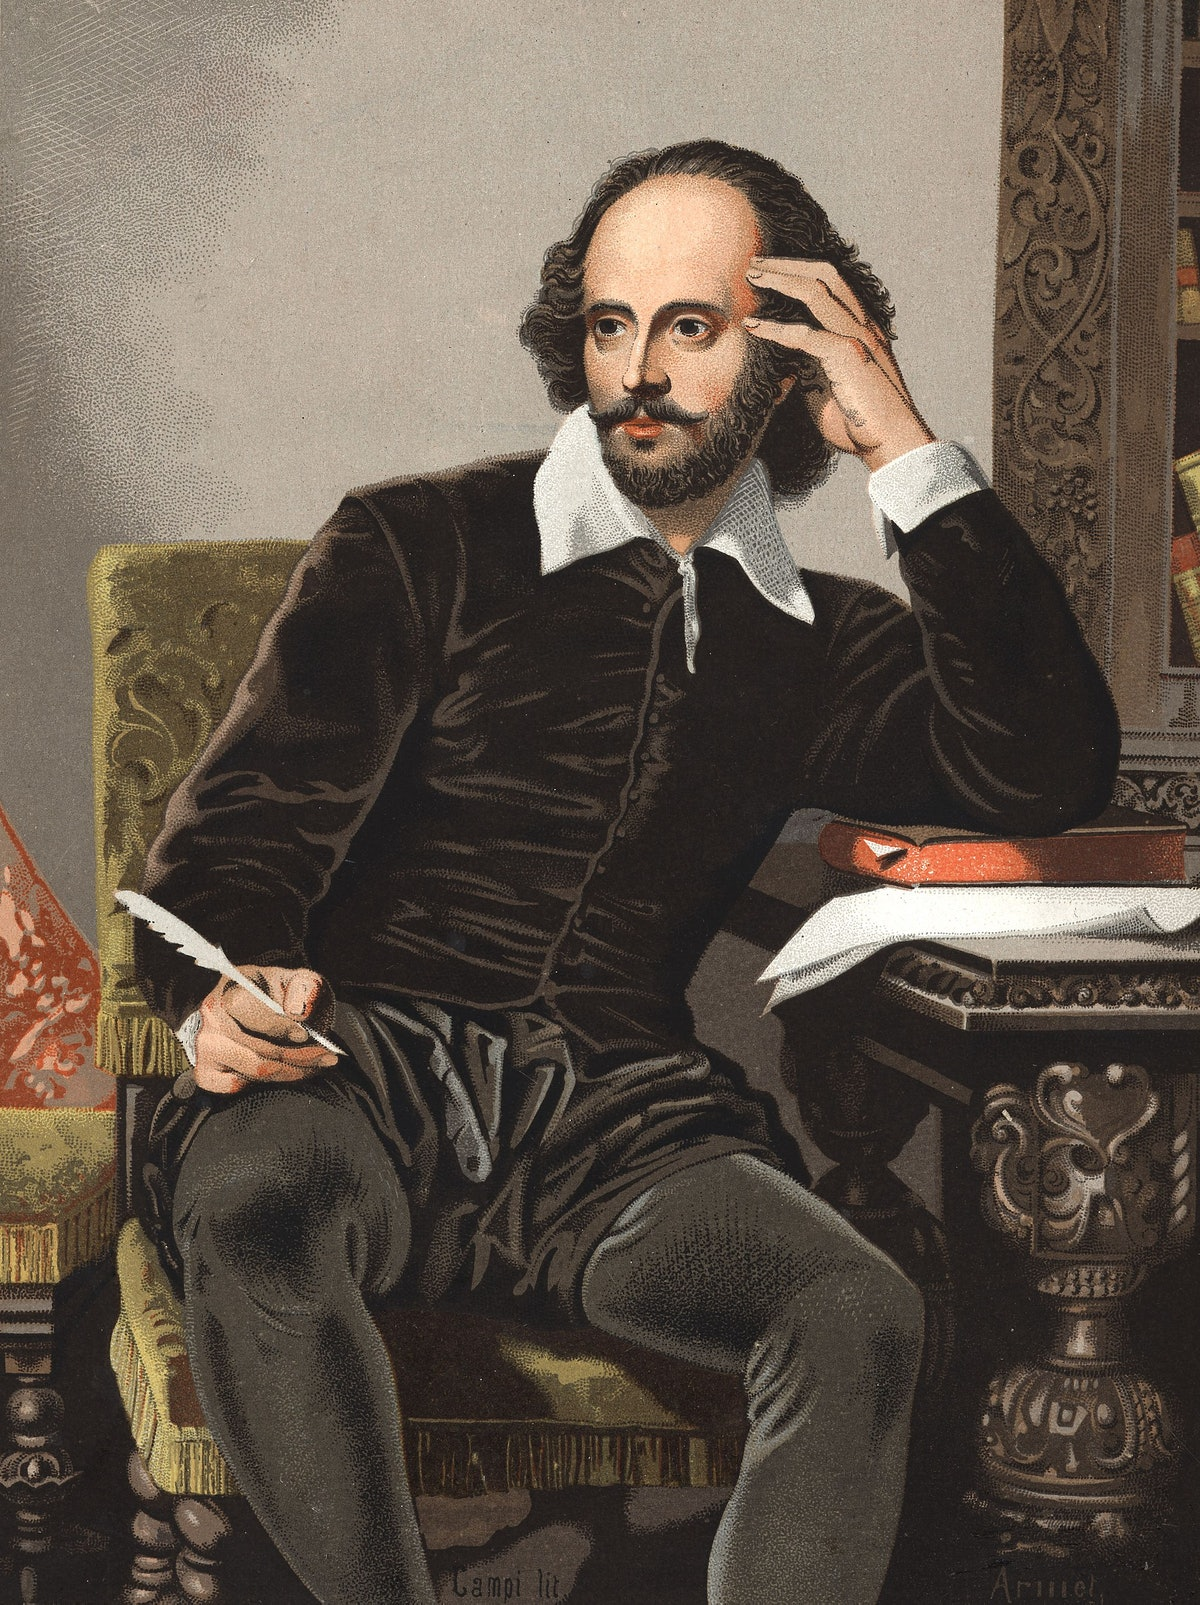 Portrait of William Shakespeare looking spry and intellectual.